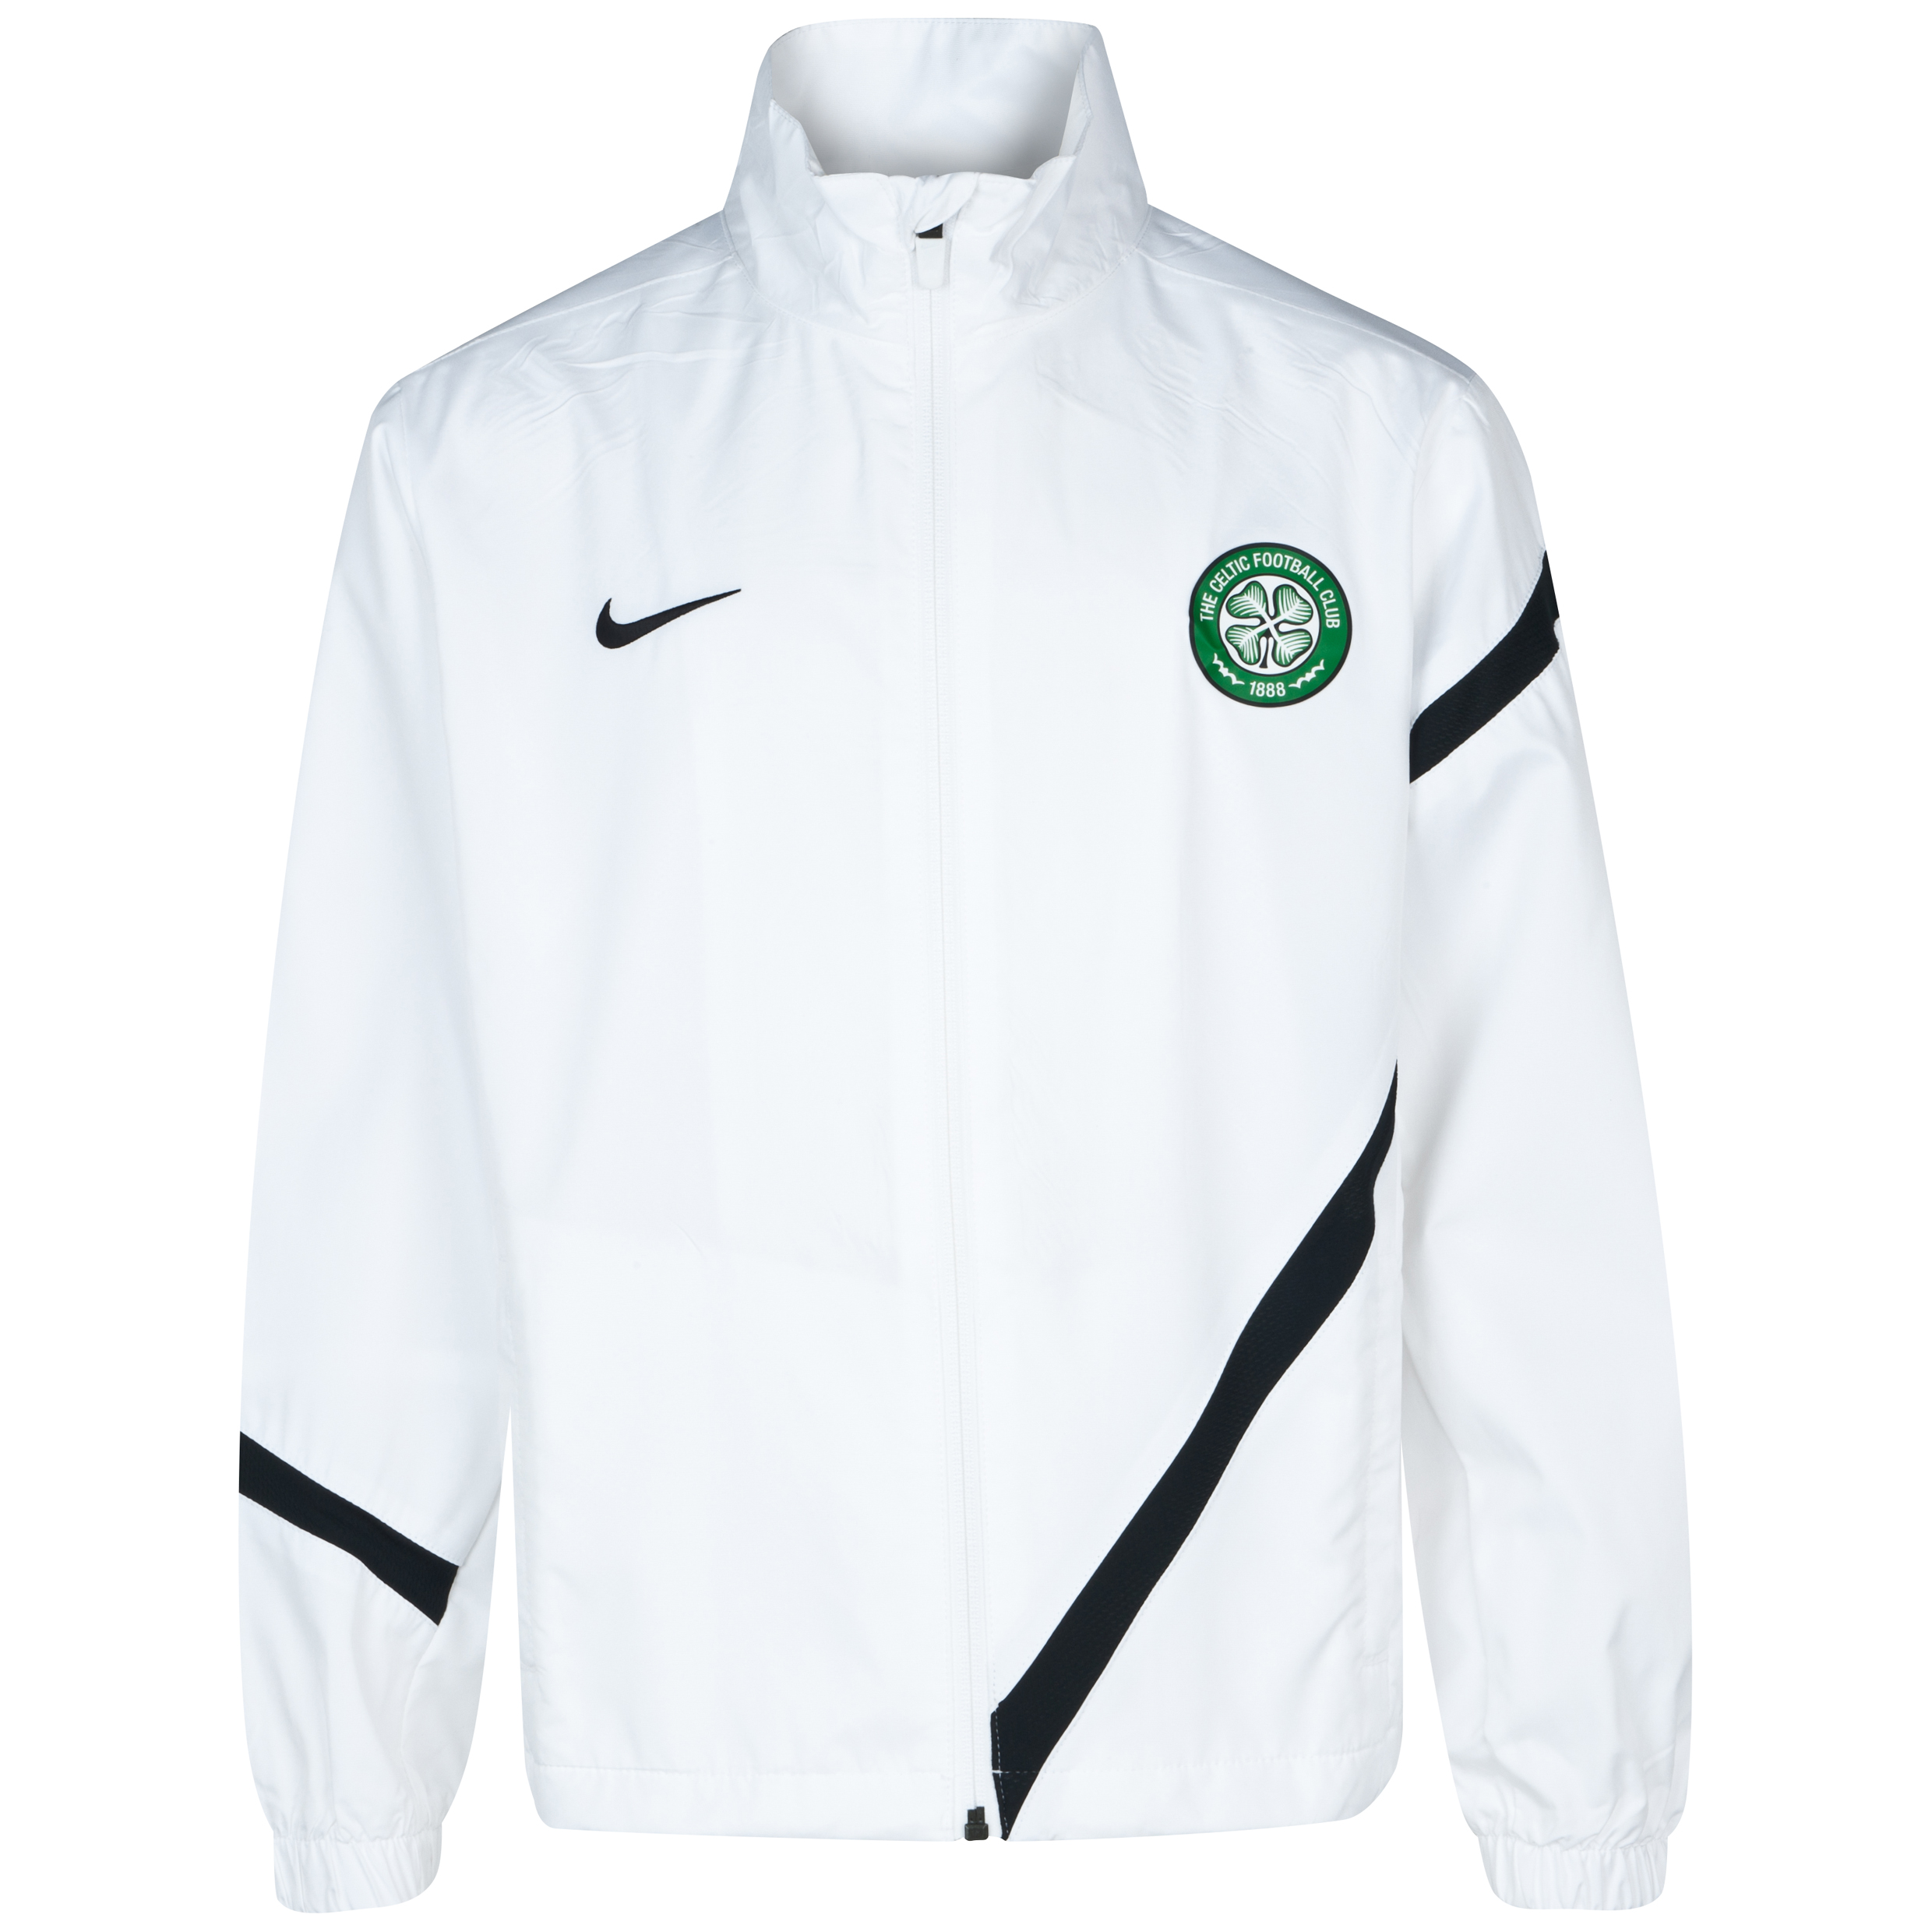 Celtic Comp Sideline Jacket - White - Youths